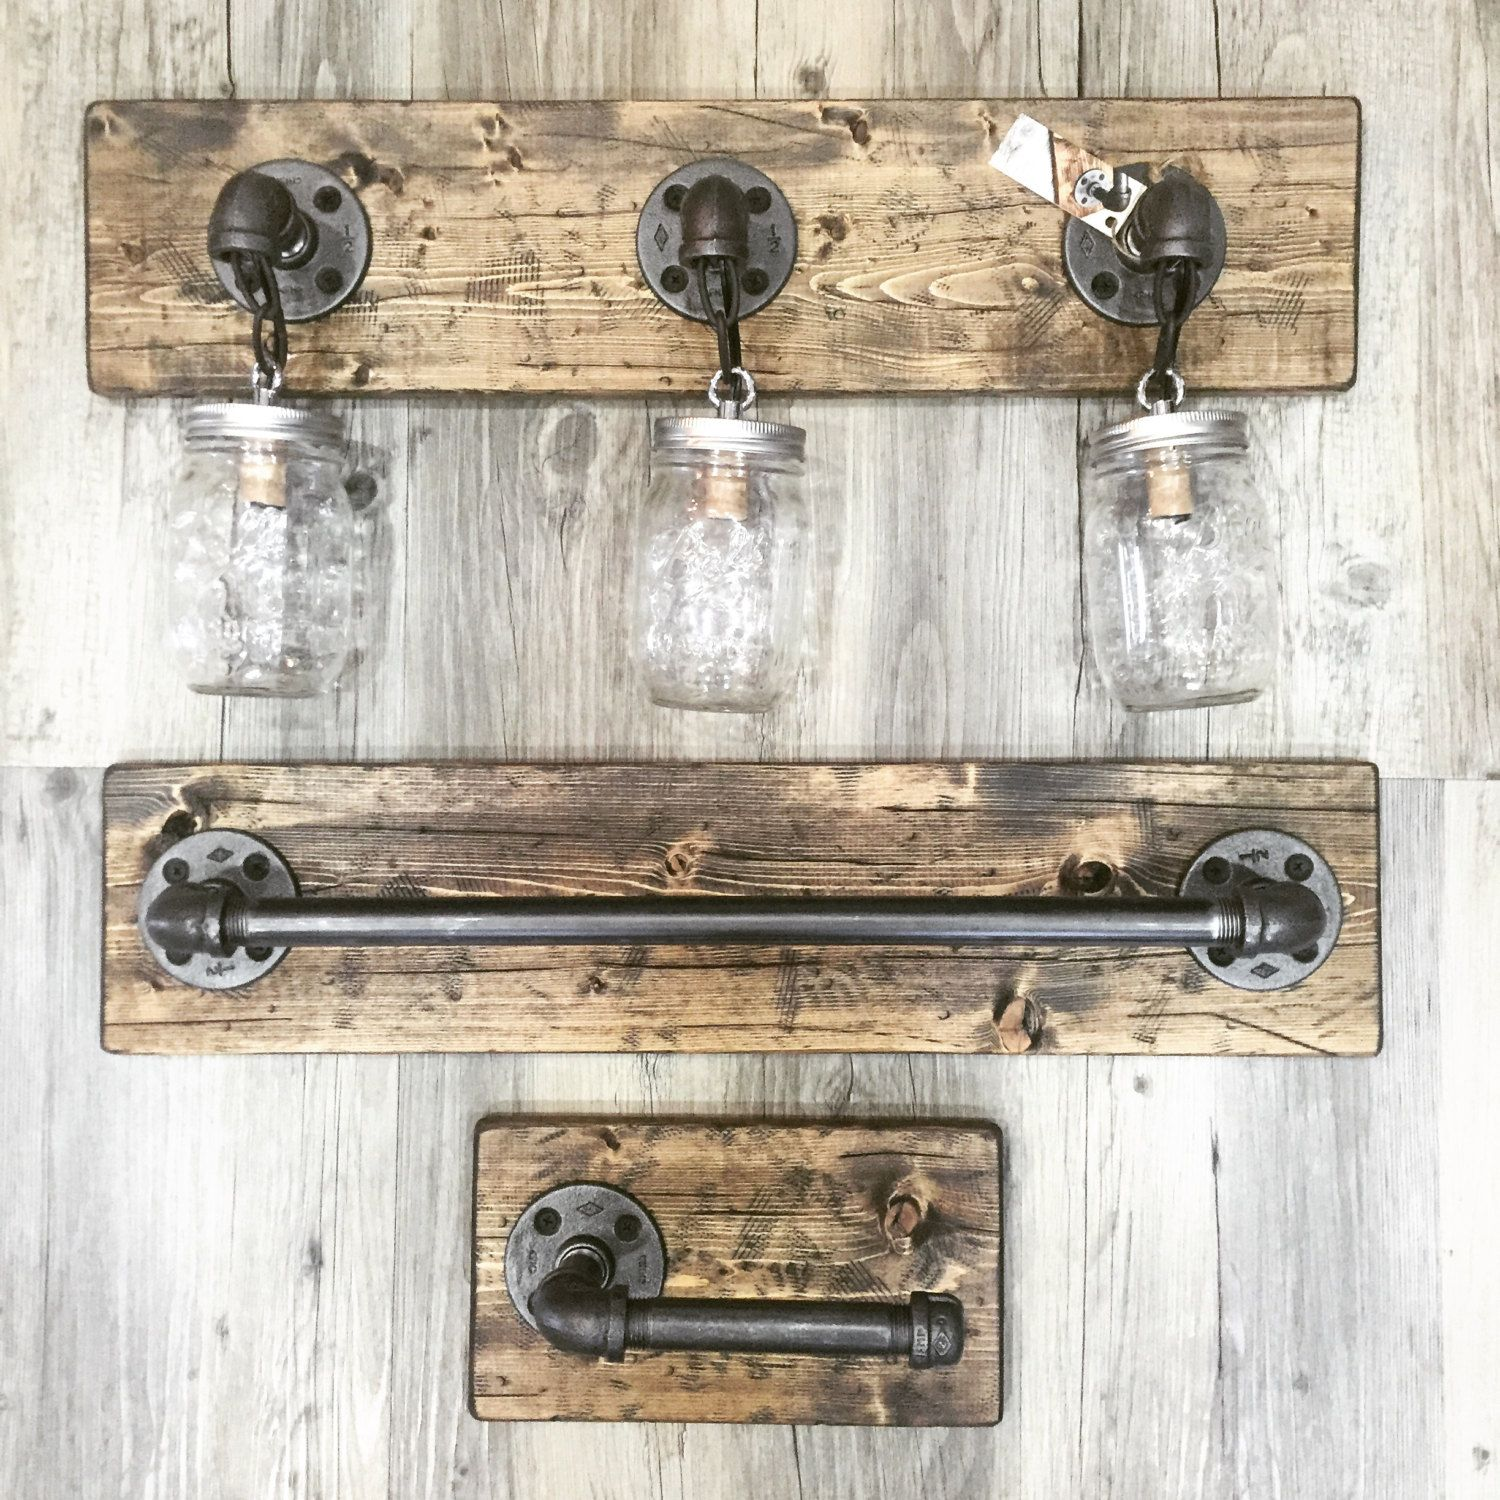 Unique Bathroom Set Rustic Mason Jar Light Rustic Vanity Rustic Bathroom Lighting Rustic Vanity Lights Rustic Toilets